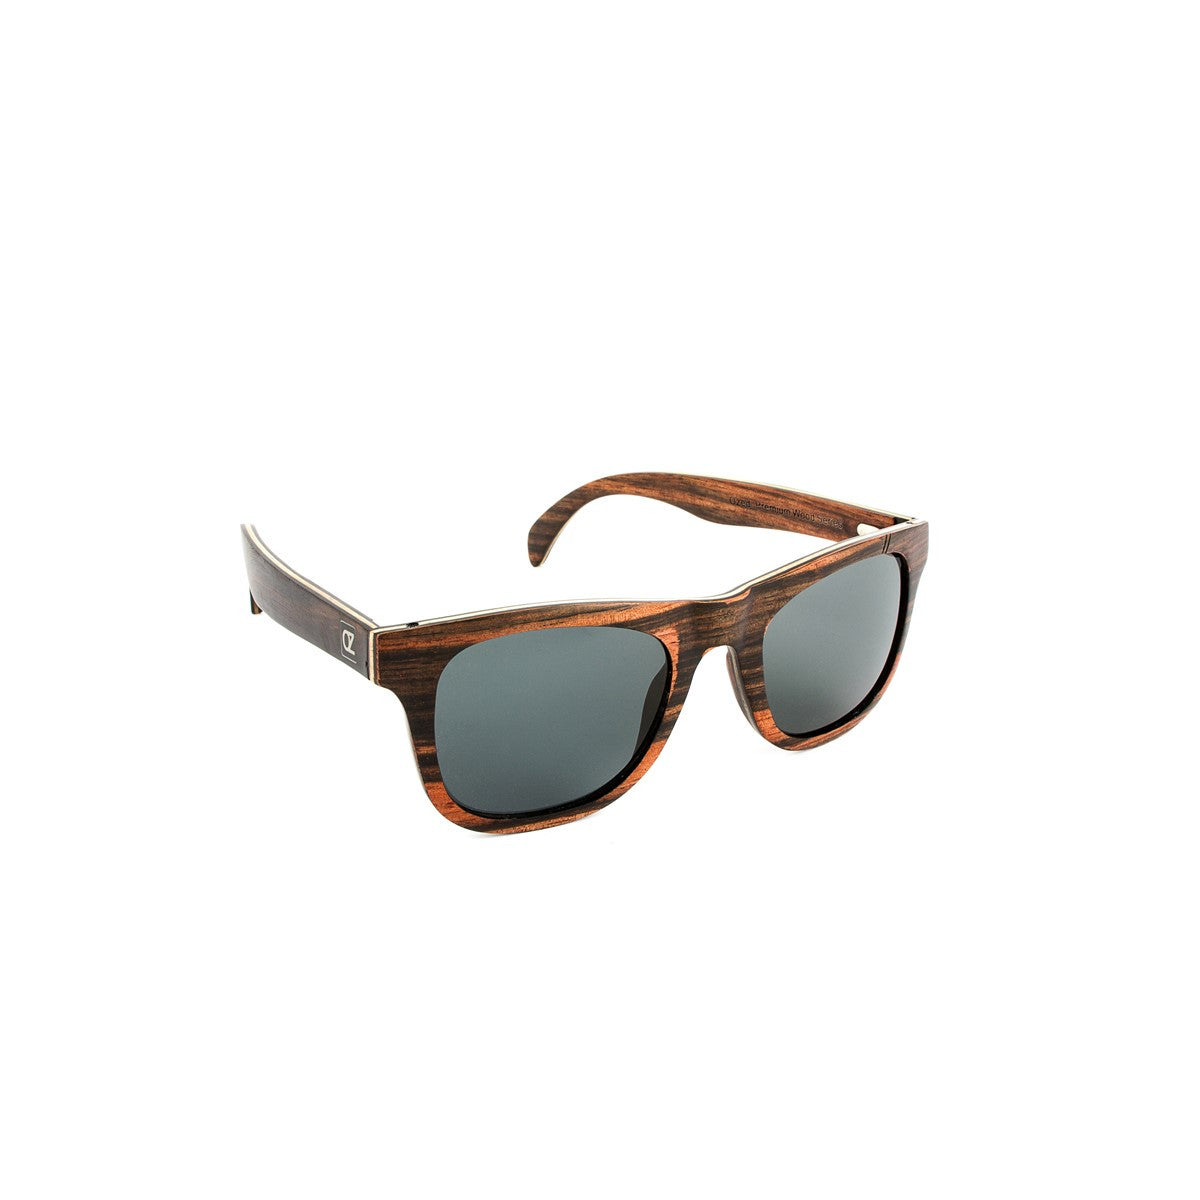 Wooden sunglasses Smoking Barrels